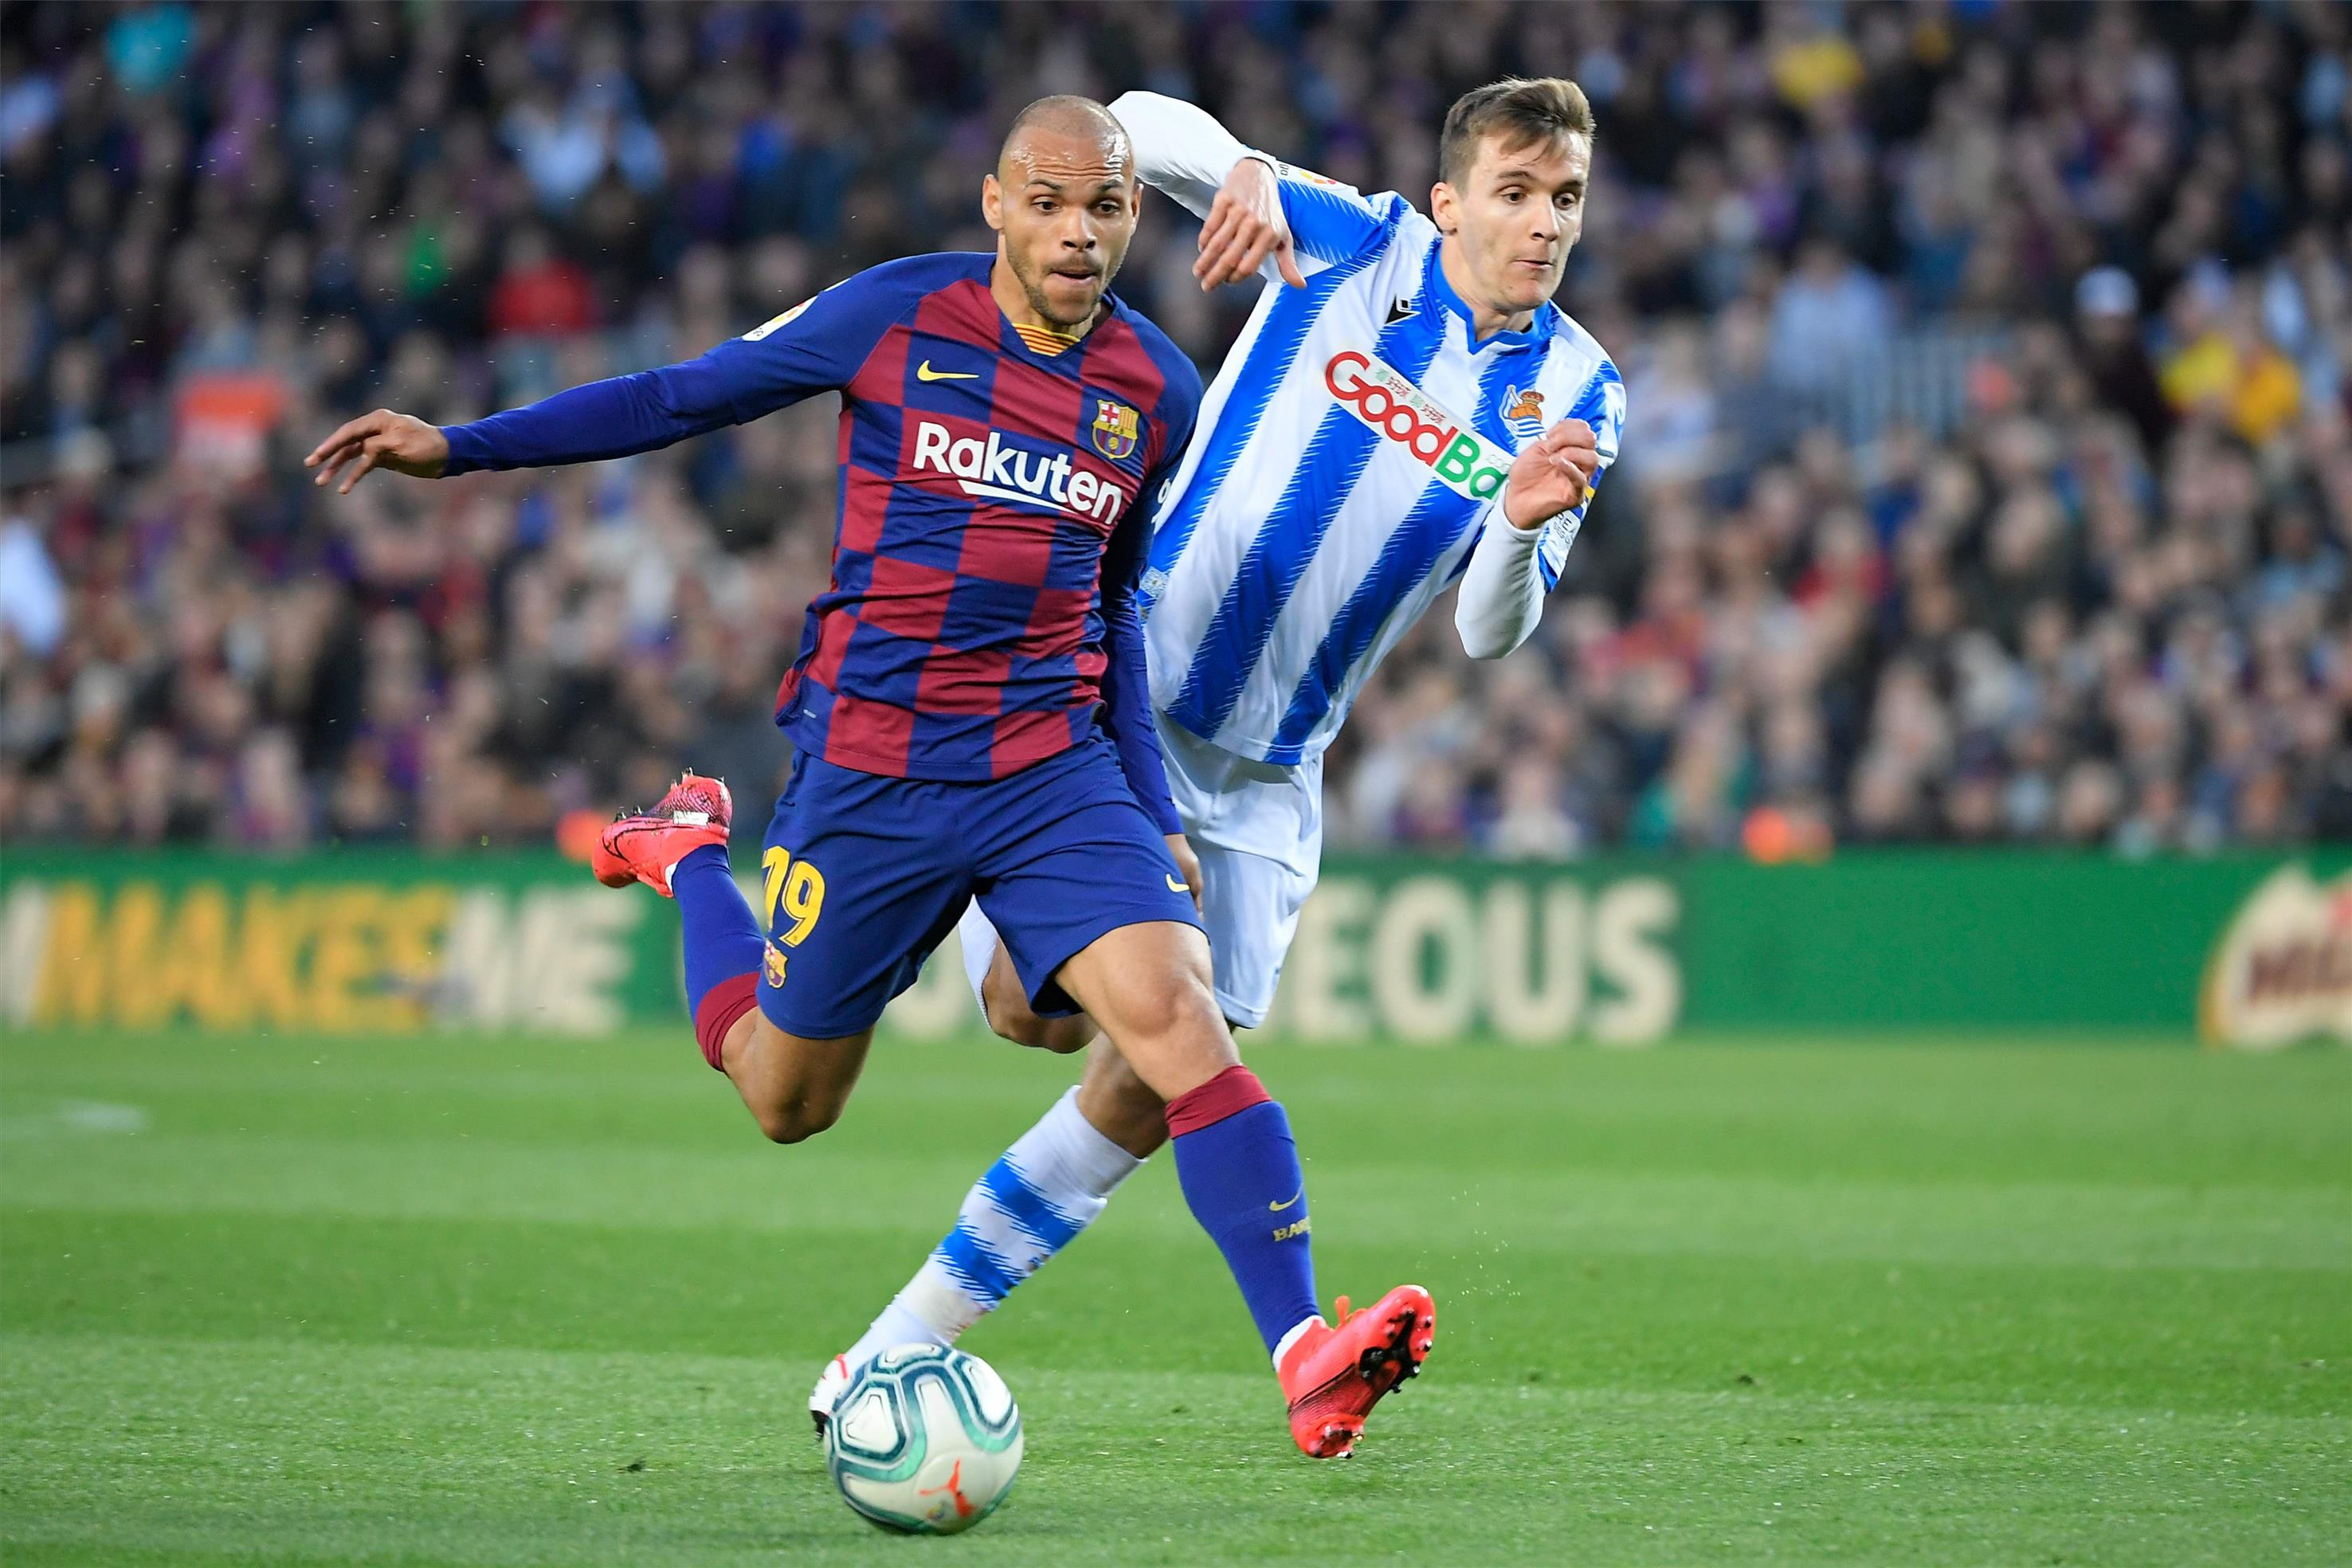 Lively but goalless first half between Barcelona and Real Sociedad